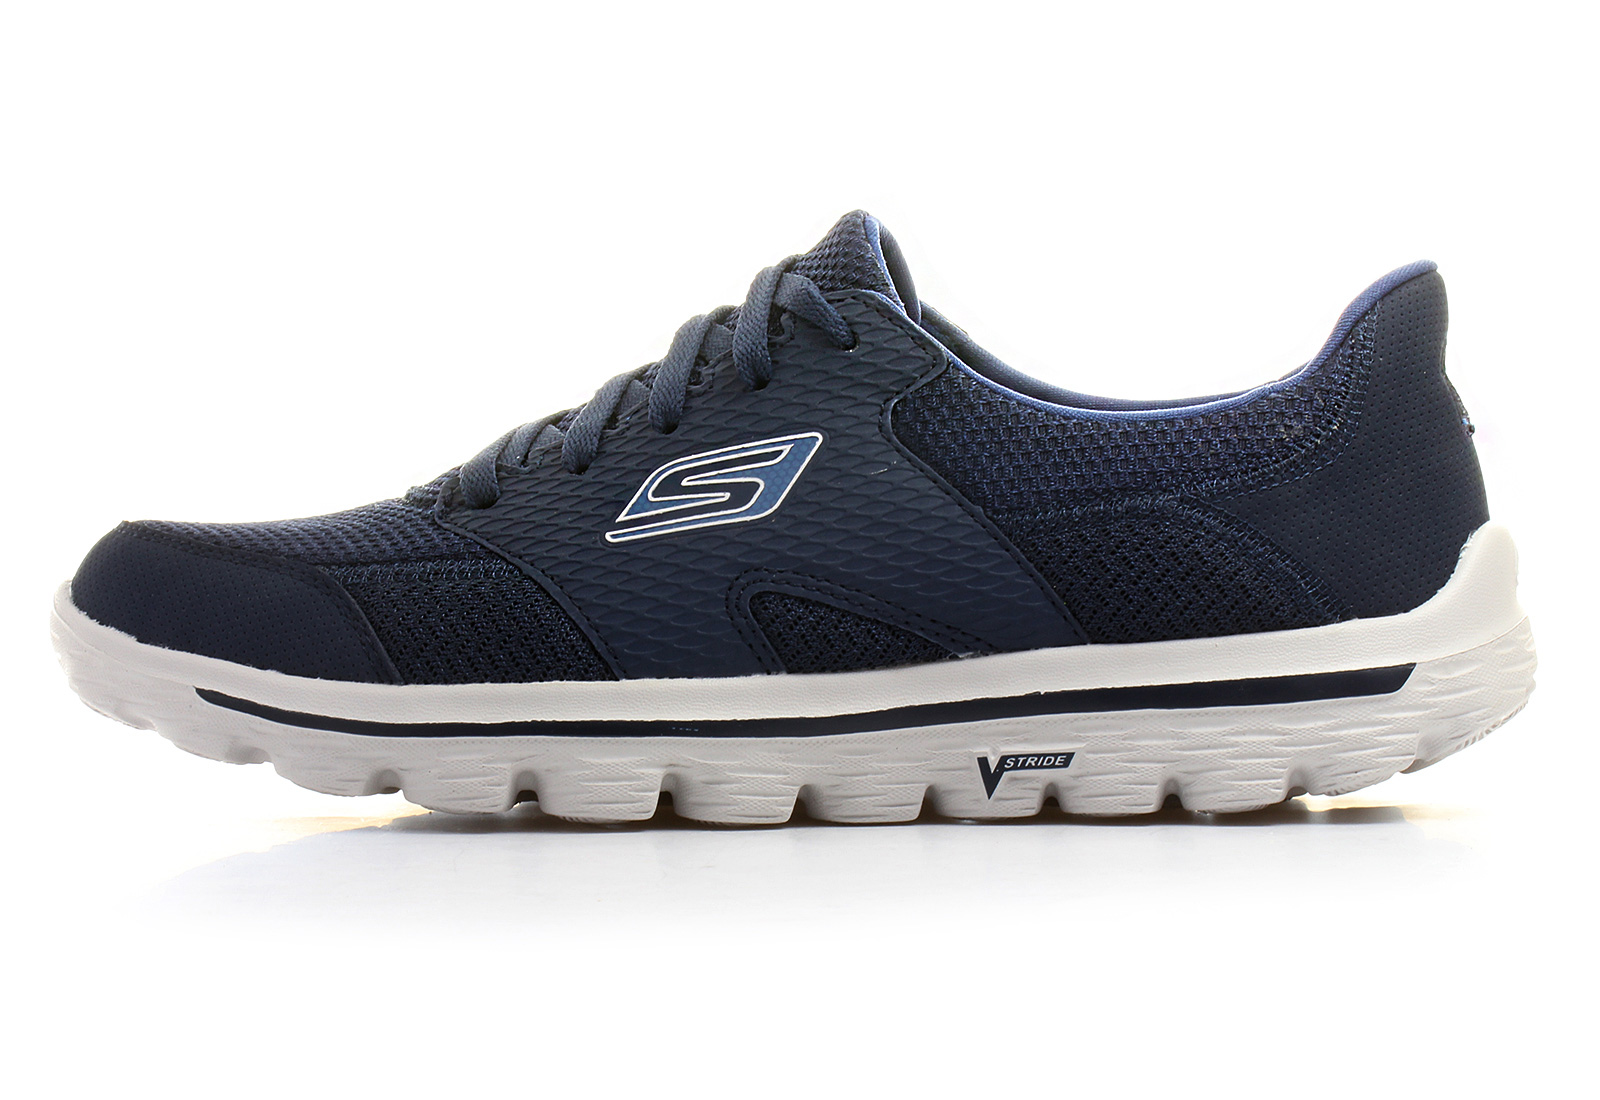 skechers men's go 2 stance